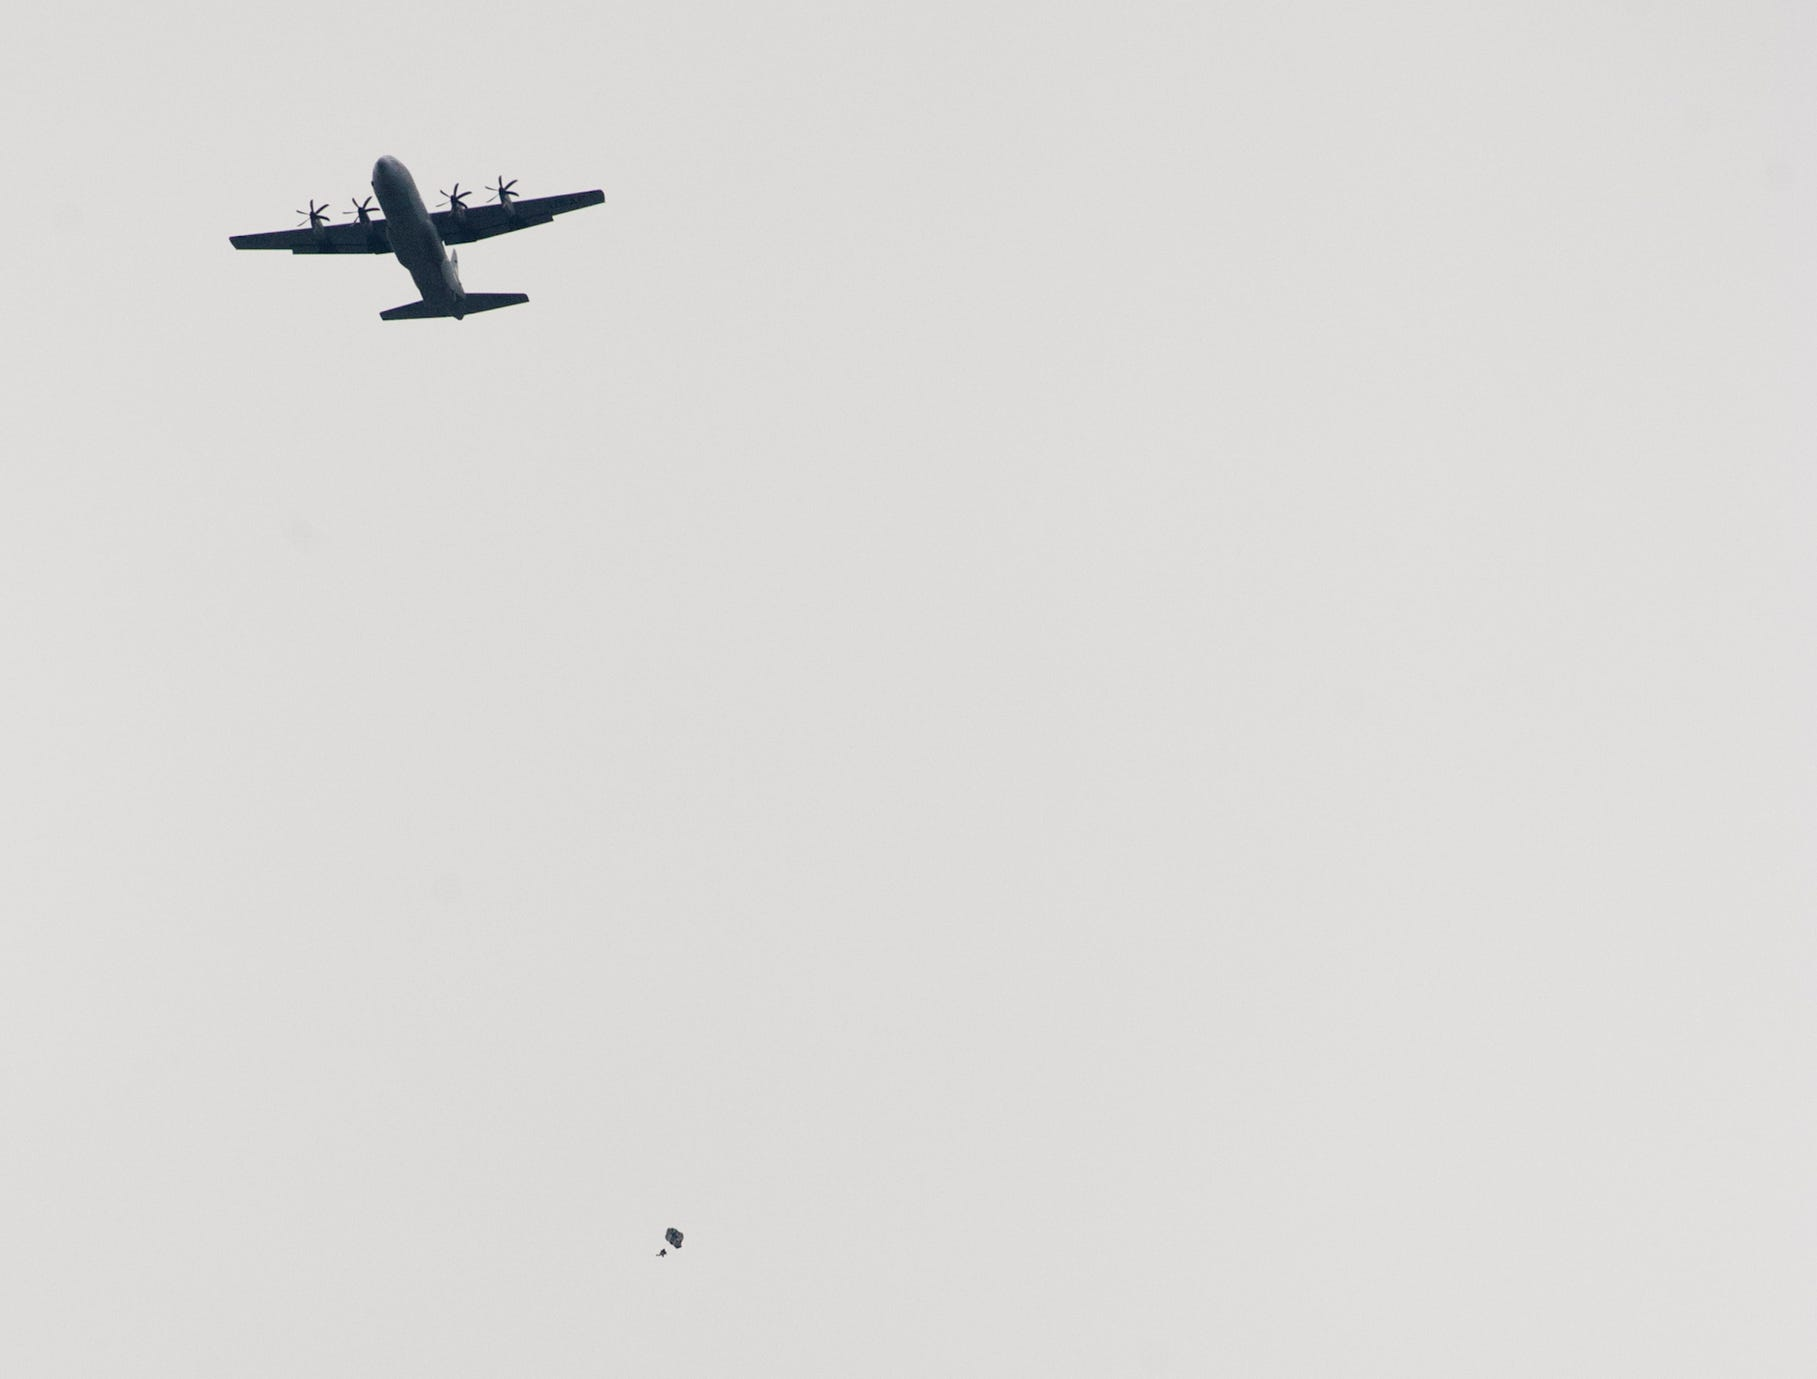 Kentucky Air National Guard's 123rd Airlift Wing flies a C-130 and Special tactics High Altitude Low Opening (HALO) air drop flies over the Ohio River dropping parachutists at the 2019 Thunder Over Louisville Air Show.13 April 2019